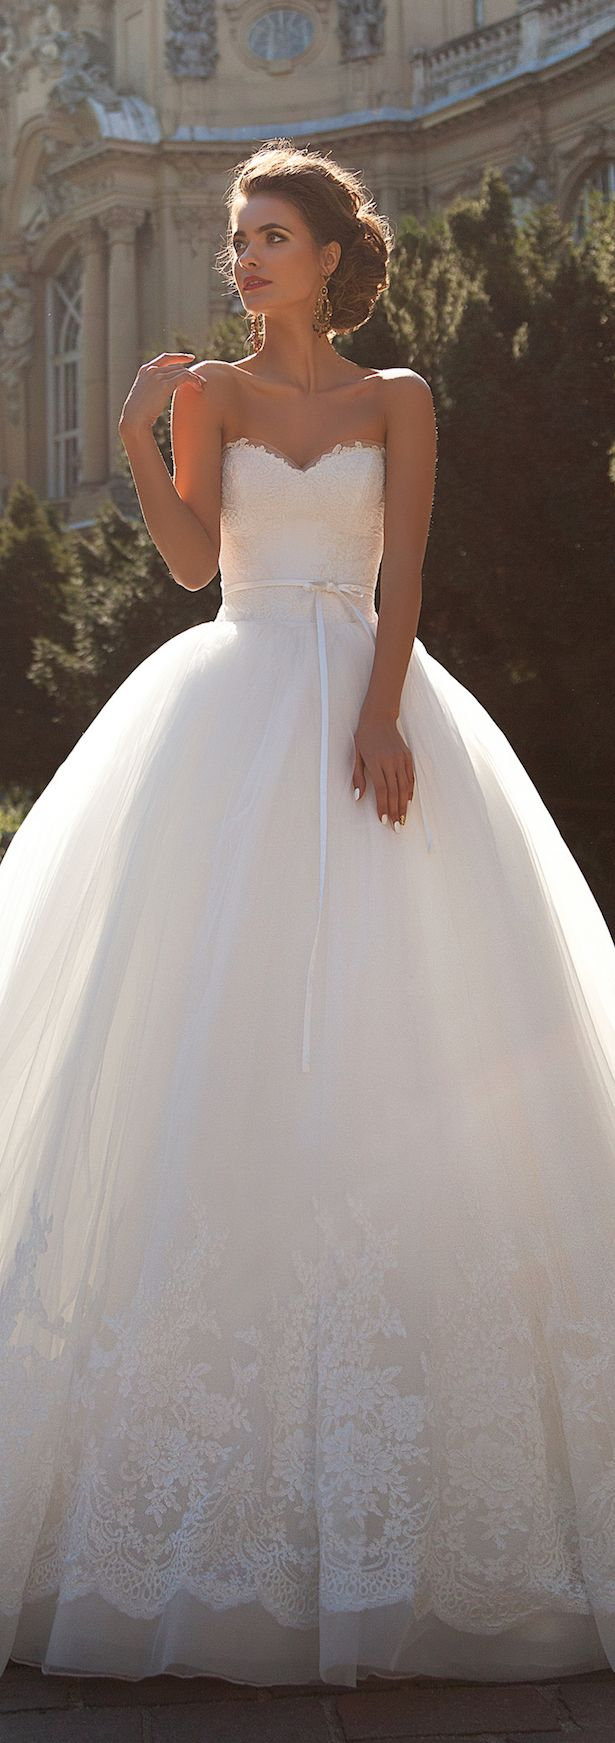 Milla Nova 2016 Bridal Collection - Karmela - Belle The Magazine